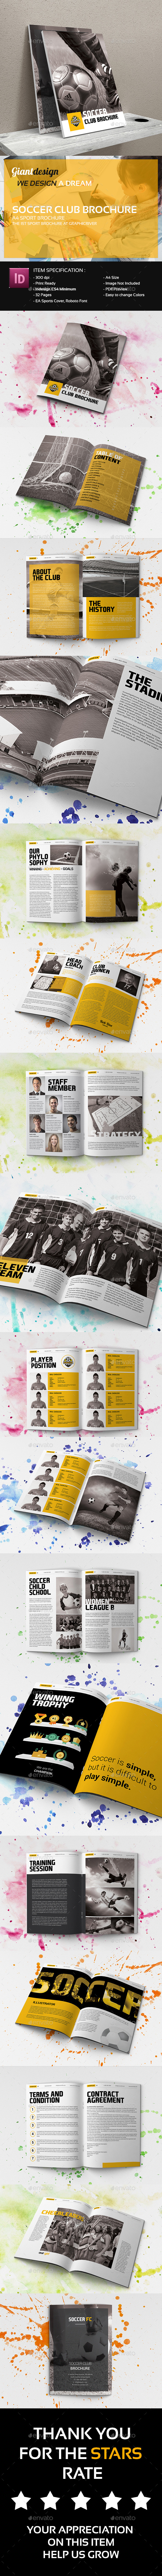 Soccer Club Brochure - Corporate Brochures